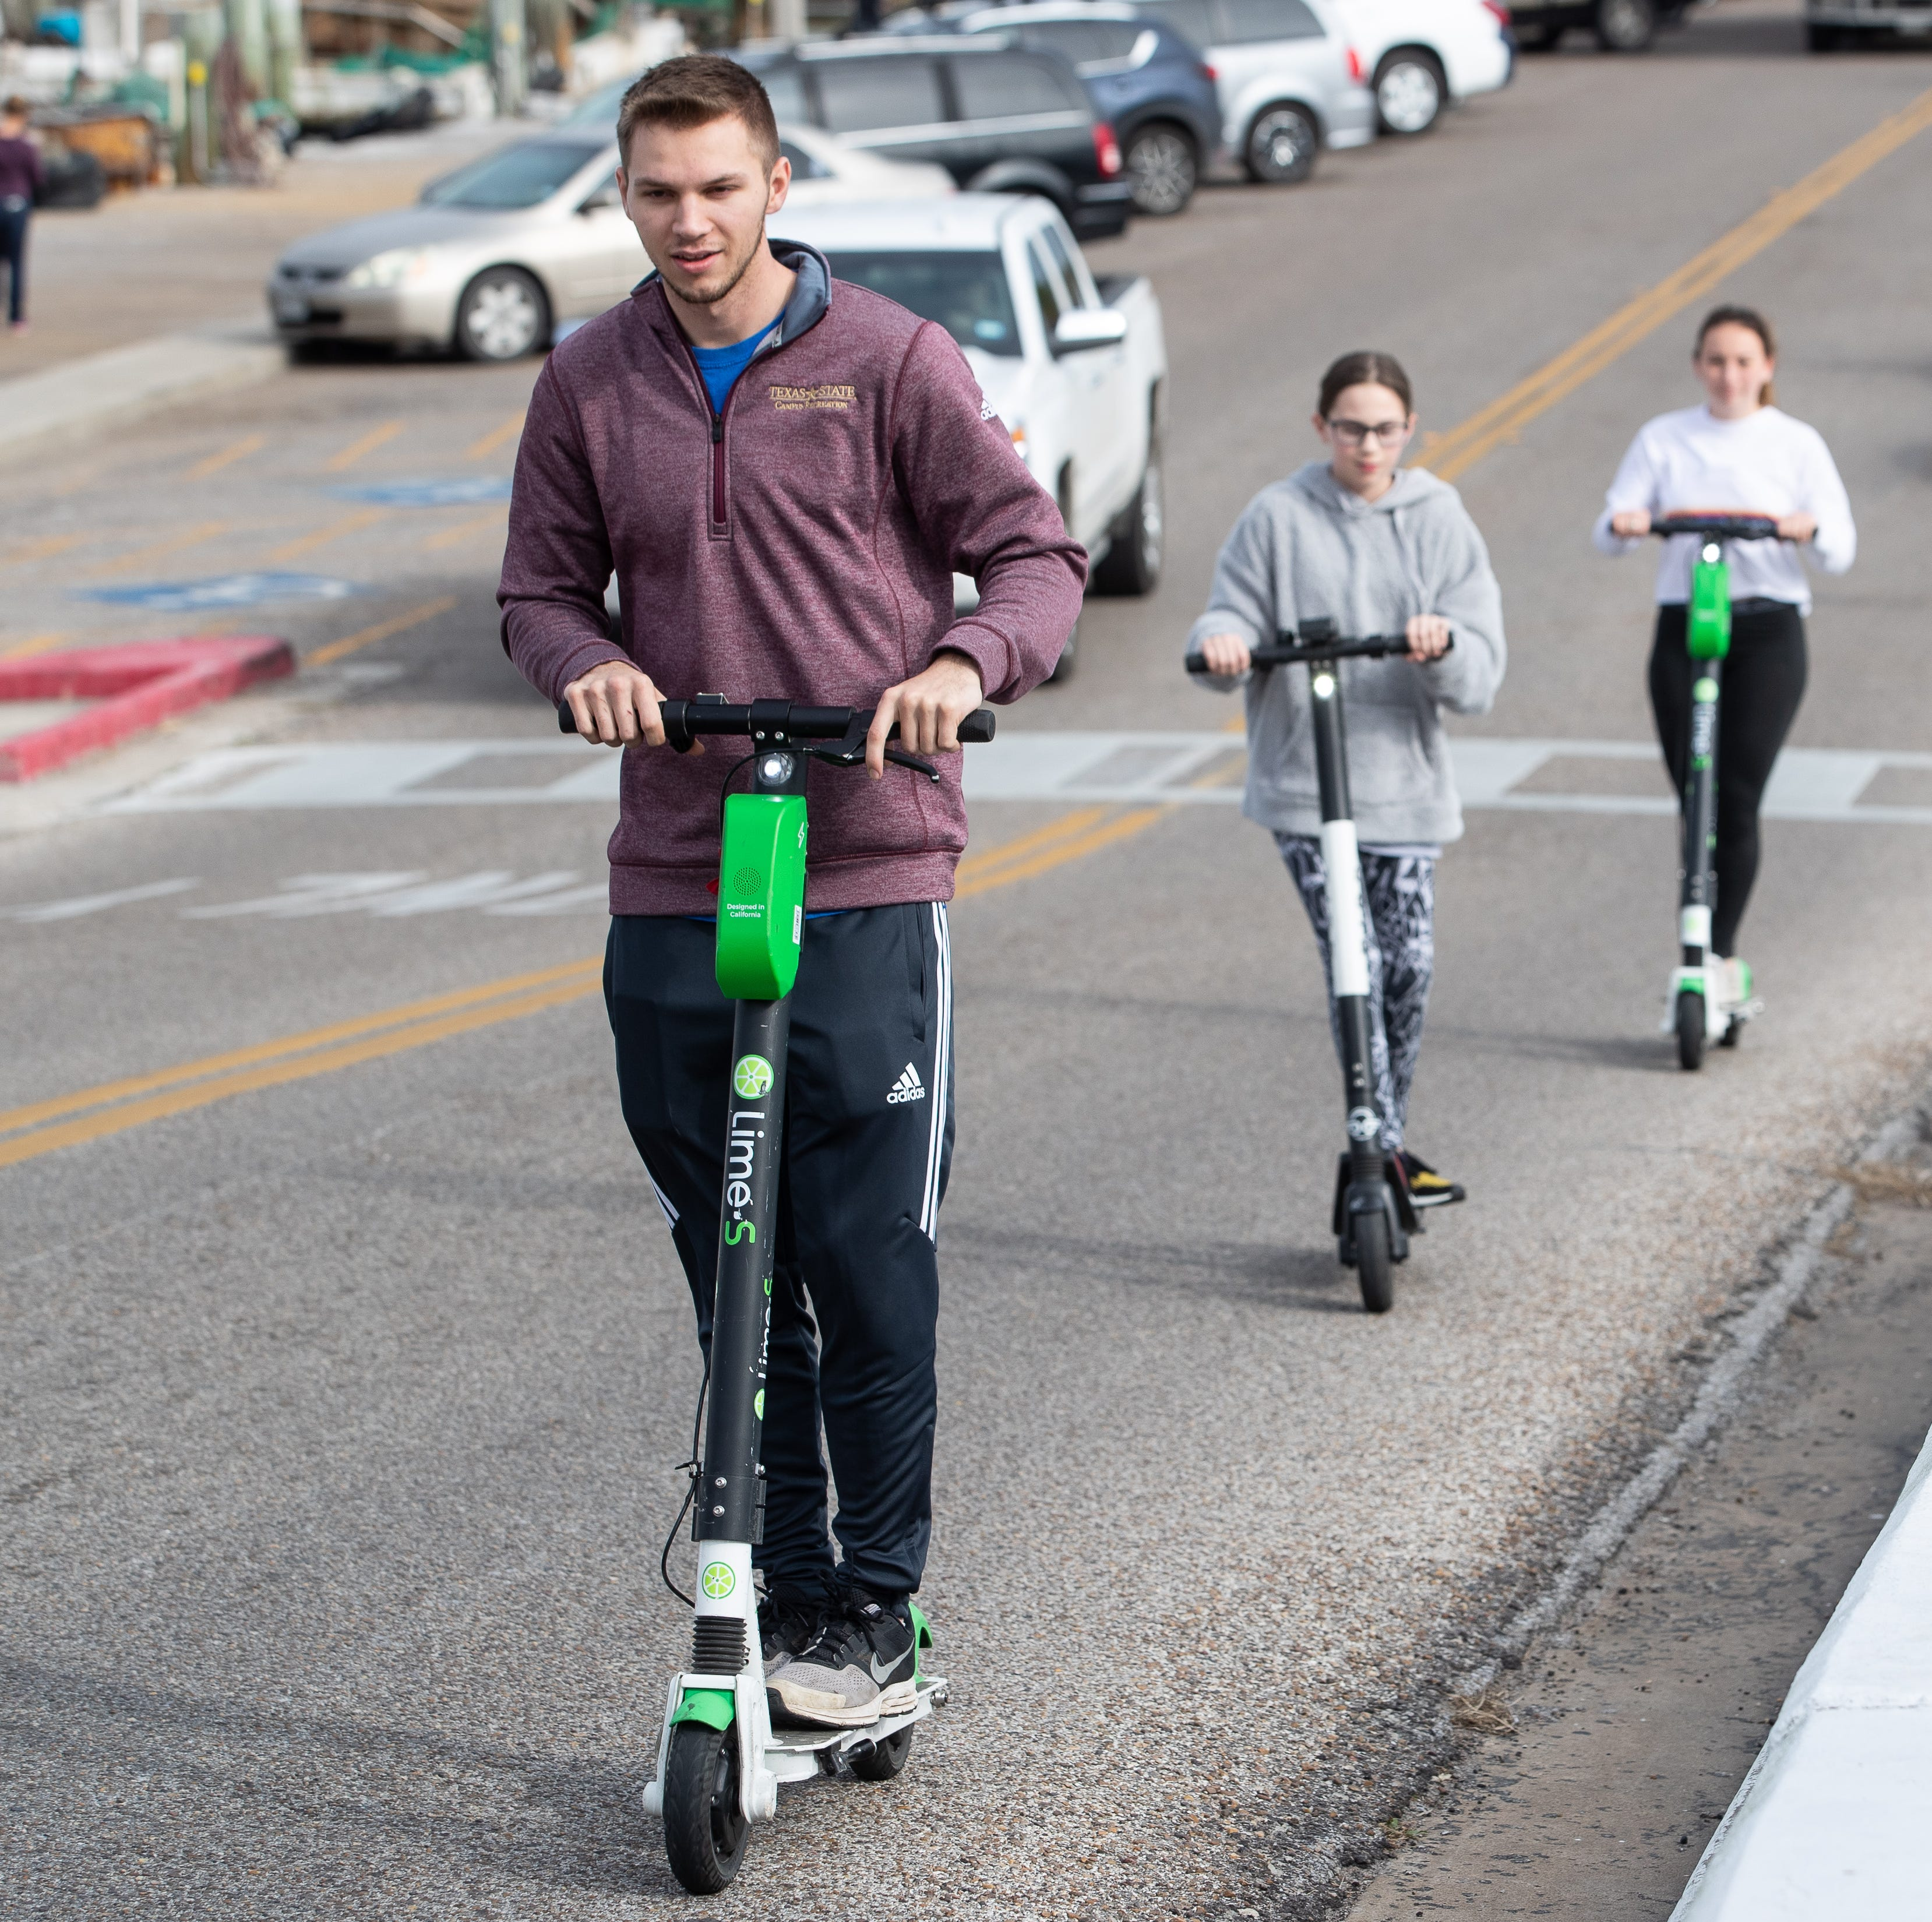 We tried the new electric scooters in Corpus Christi. This is what we think.